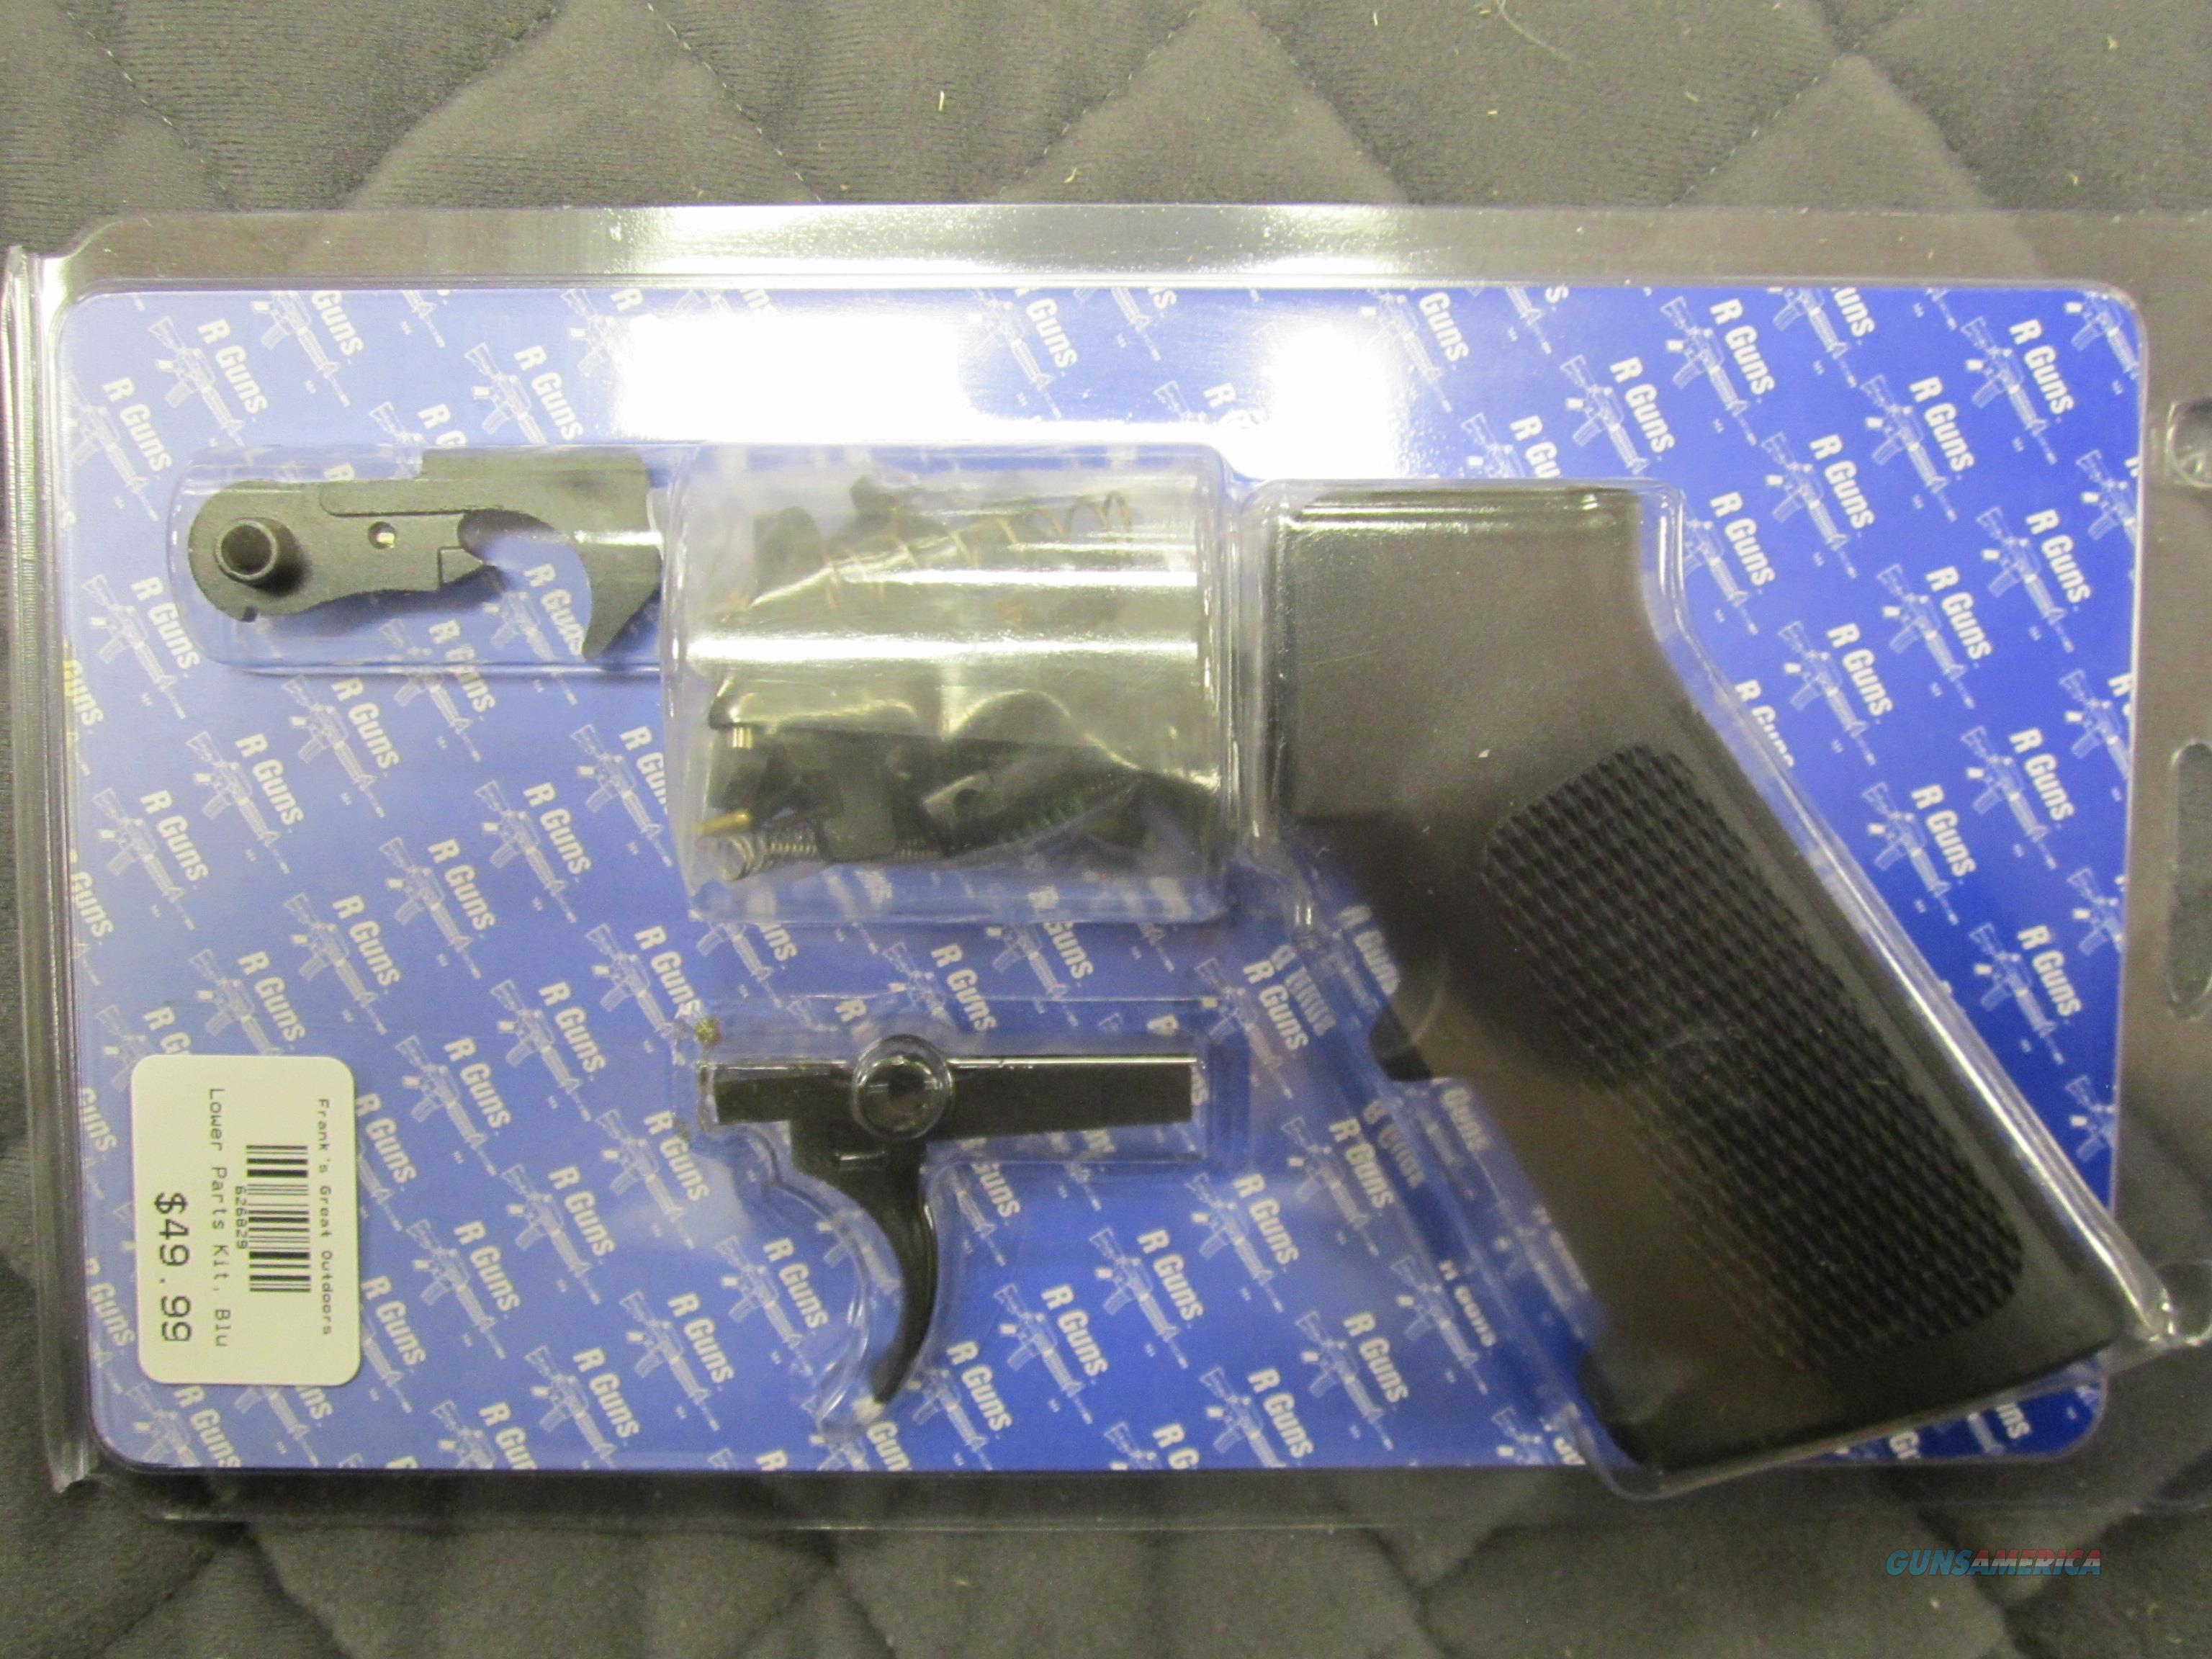 NIB R Guns Lower Parts Kit  Non-Guns > Gun Parts > By Manufacturer